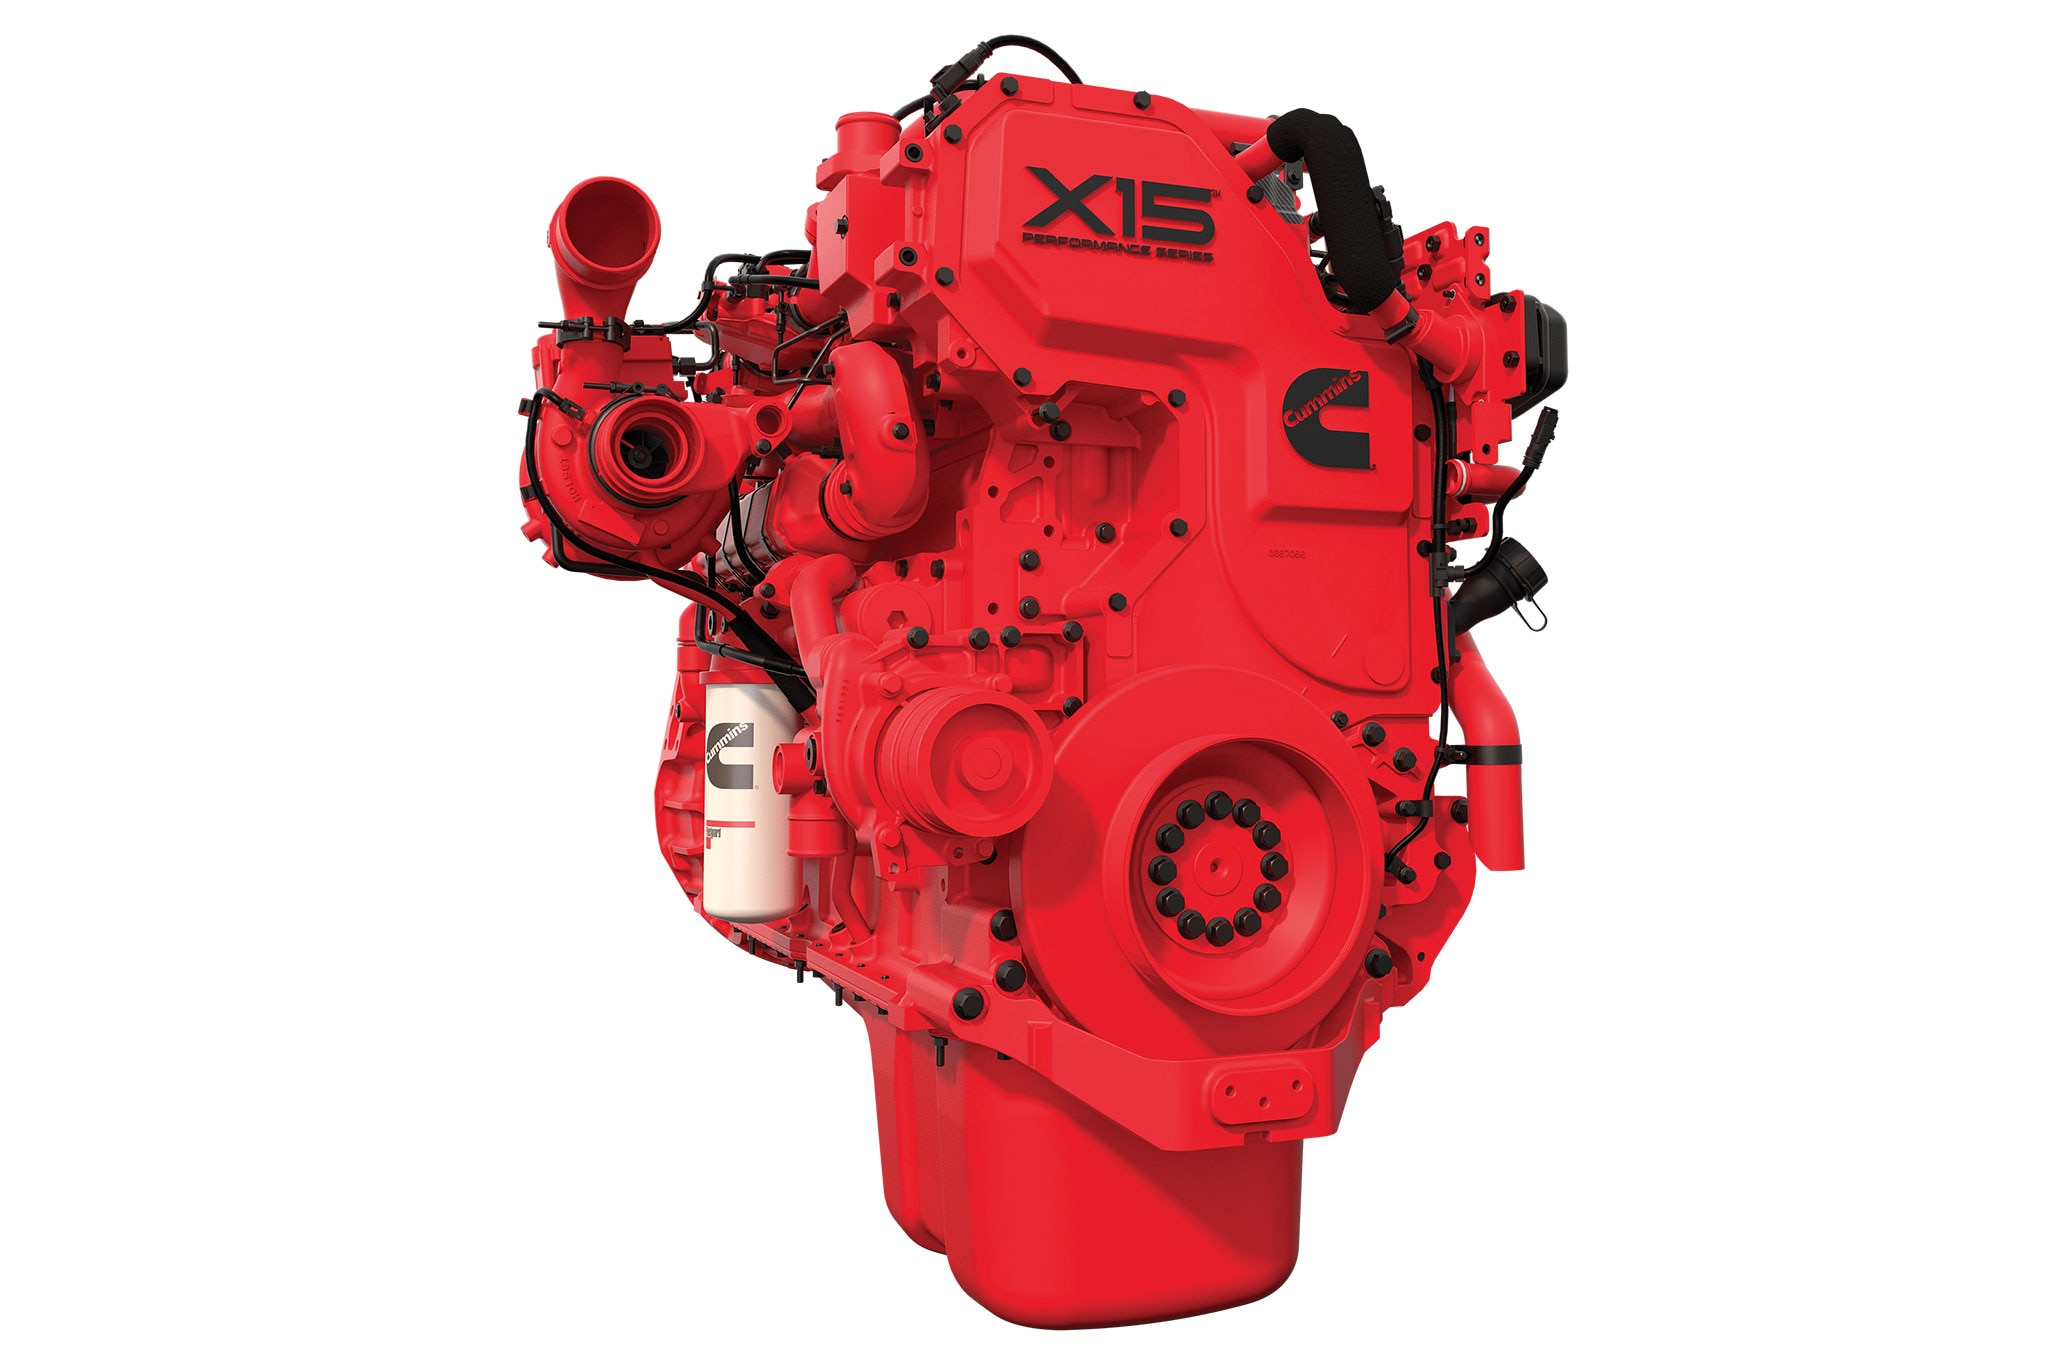 Heavy-Duty Truck Engine, The Cummins X15